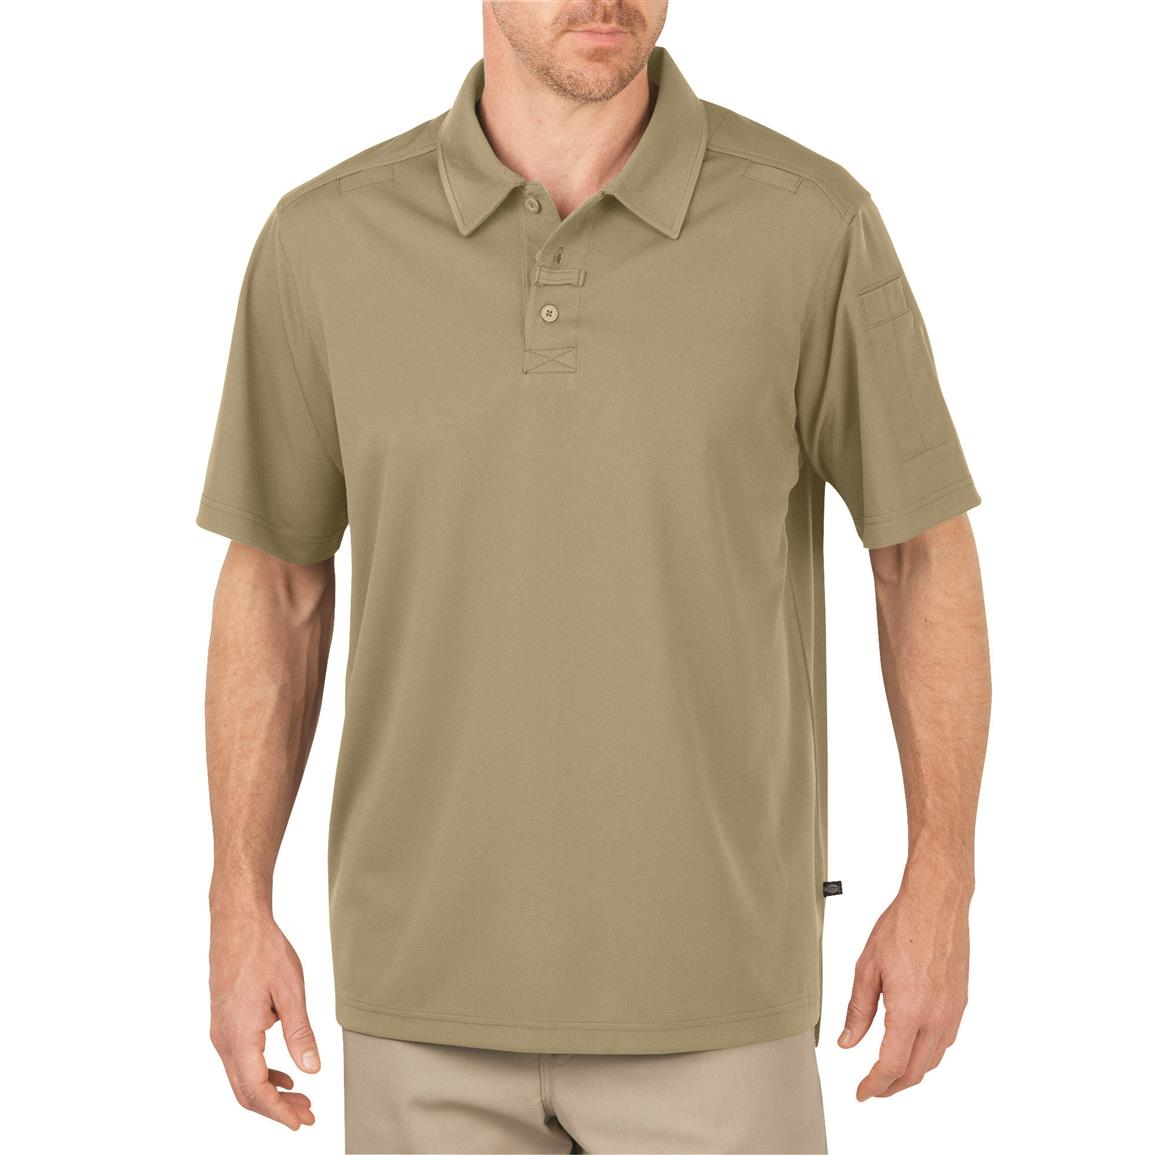 Dickies Men's Tactical Performance Polo Shirt, Desert Sand